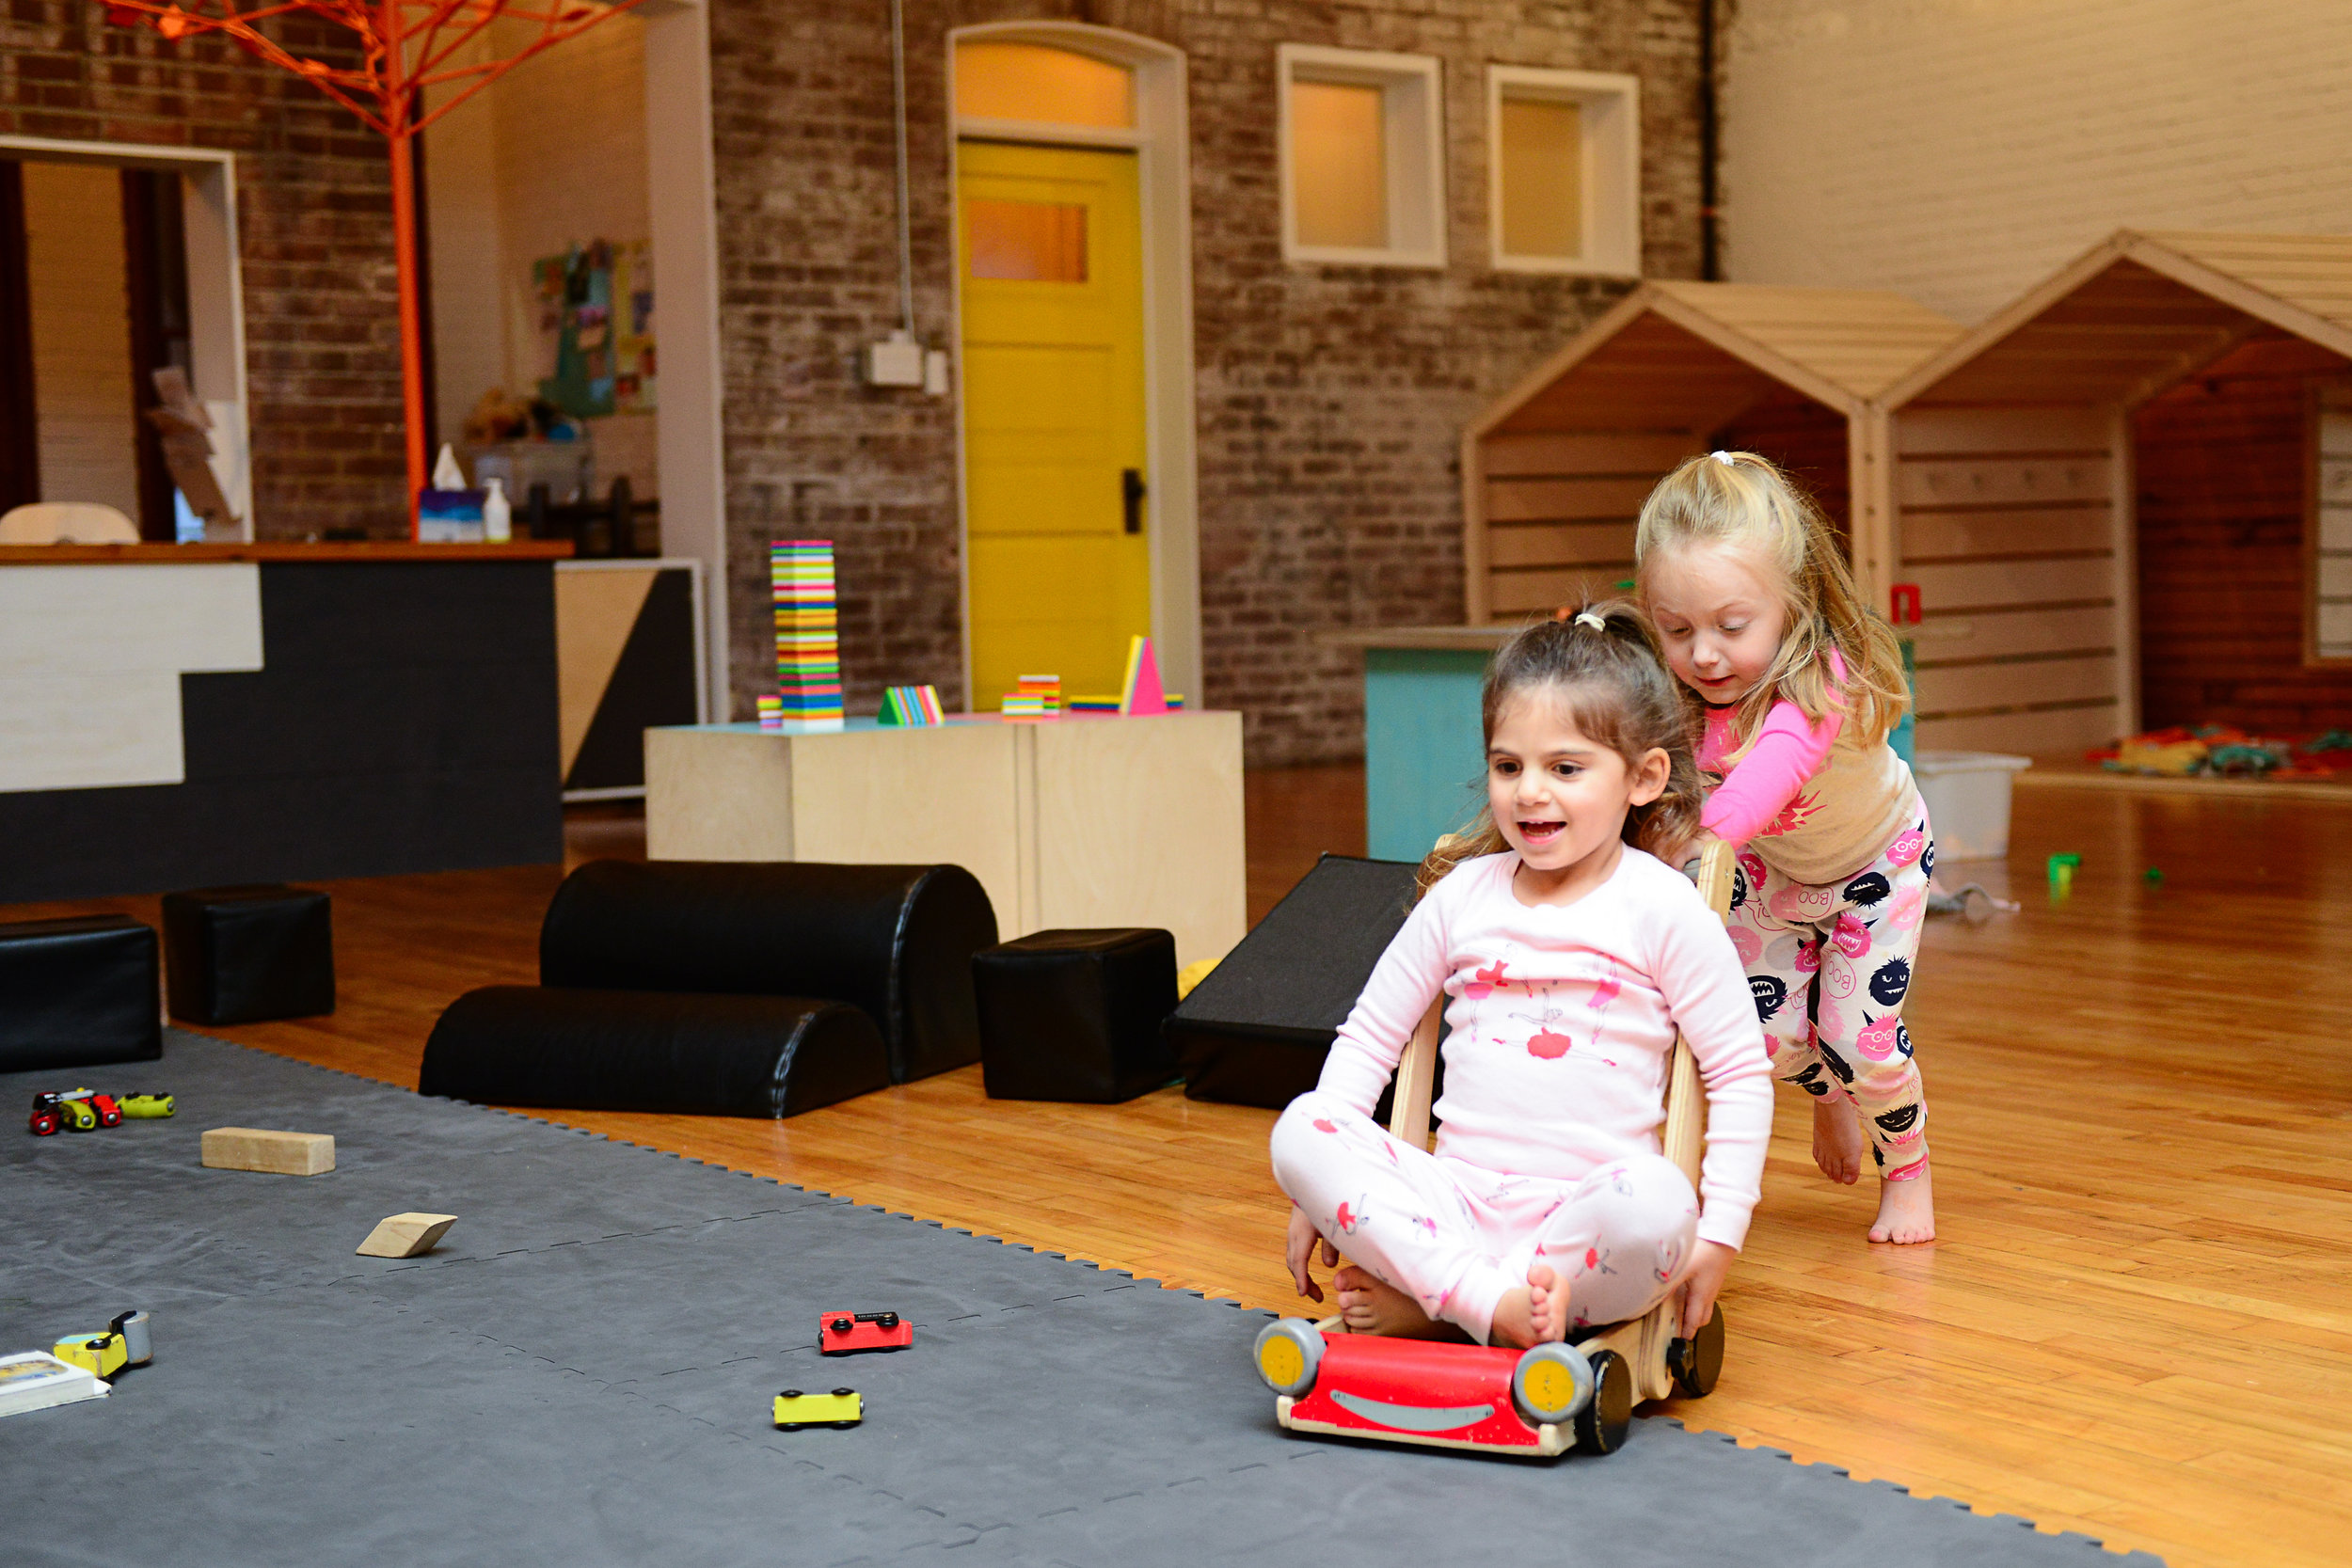 Girls playing in playspace